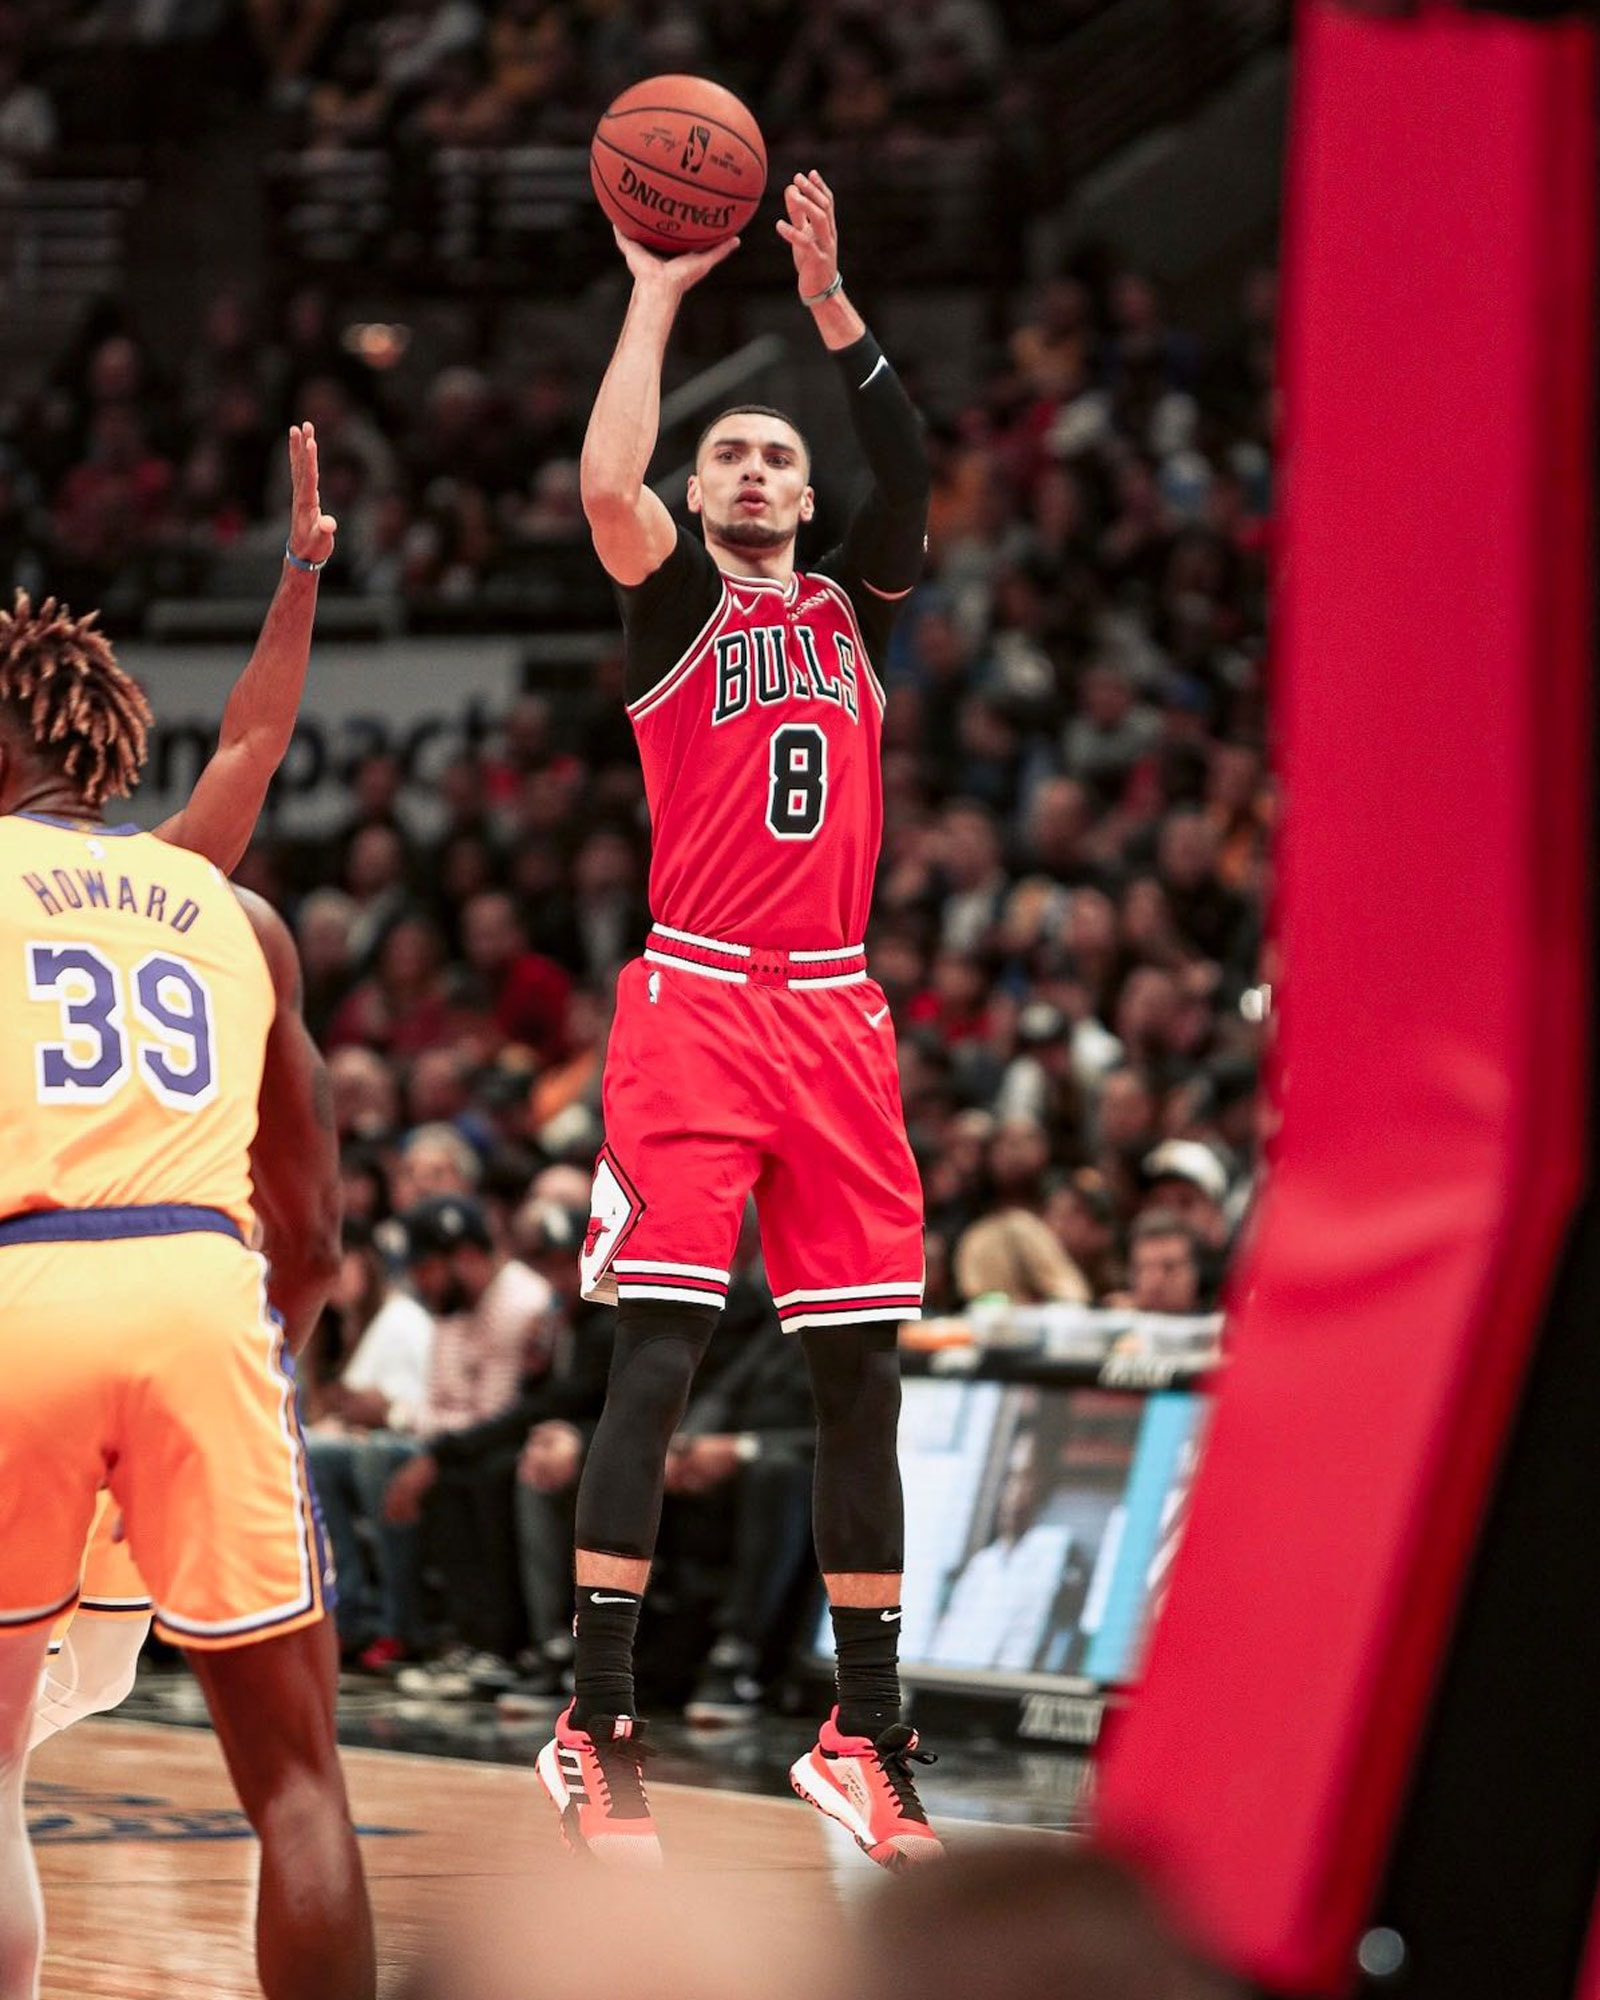 Zach LaVine shoots a three against the Los Angeles Lakers.